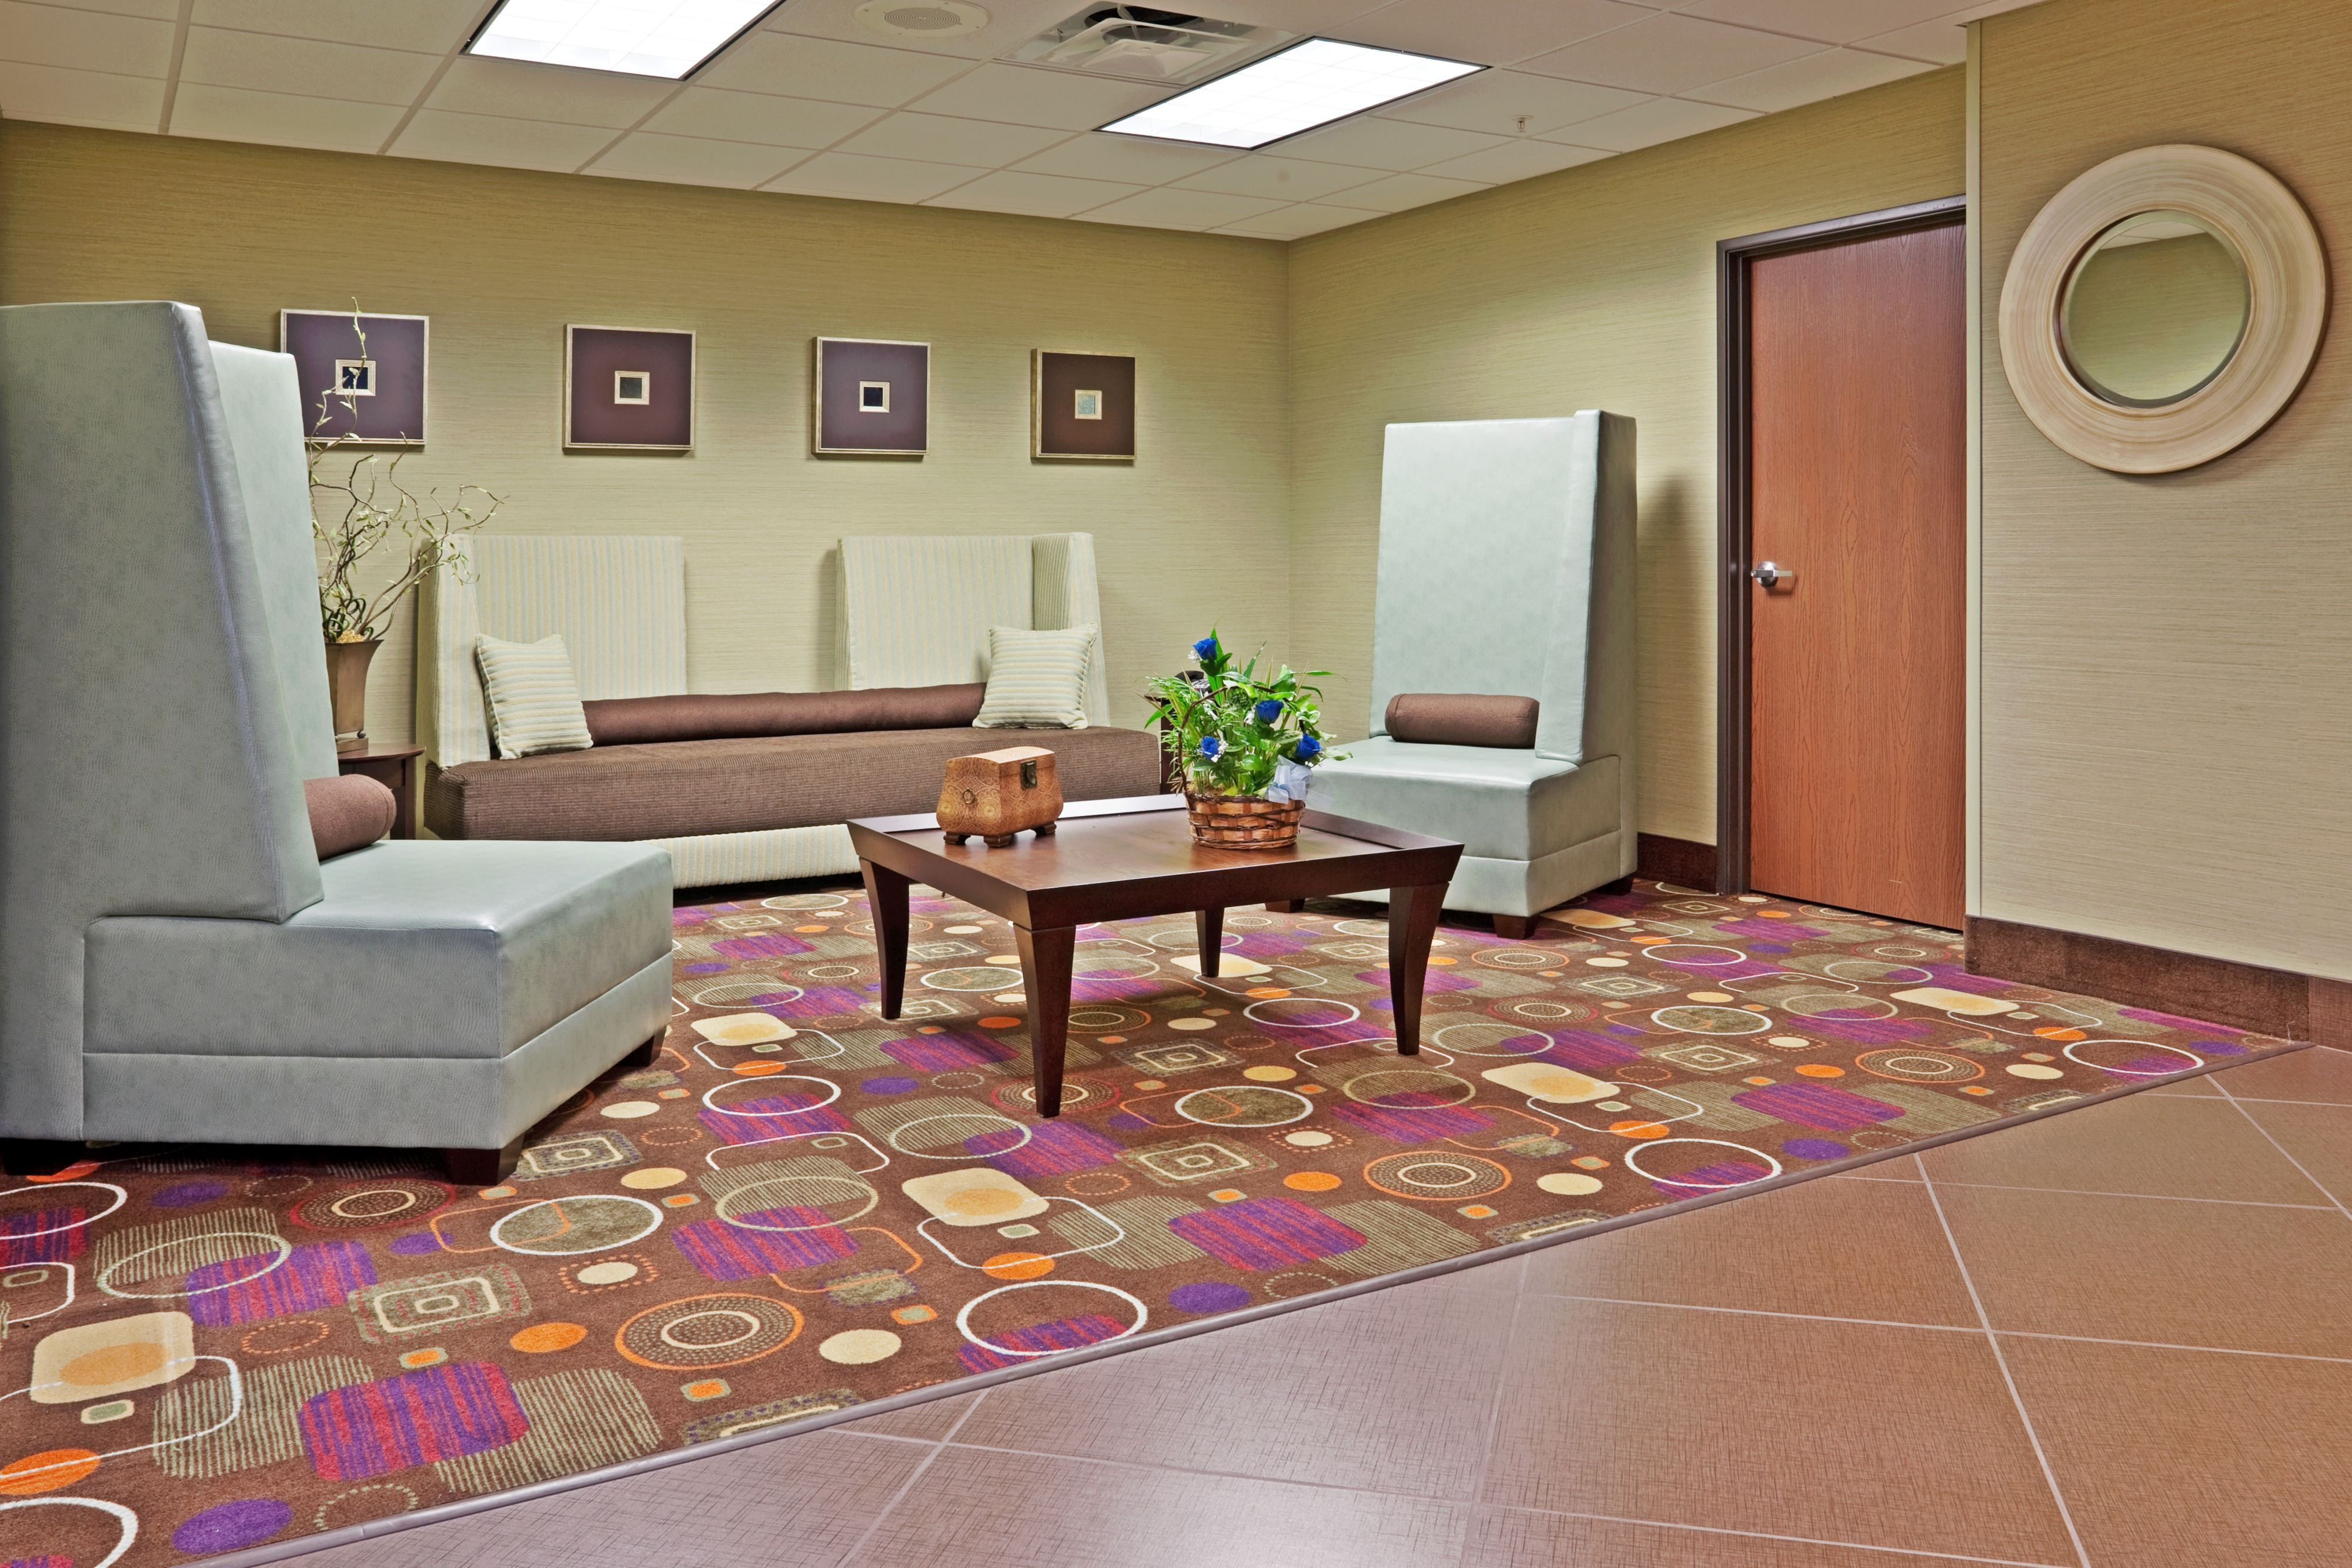 Holiday Inn Express Troutville - Roanoke North image 8